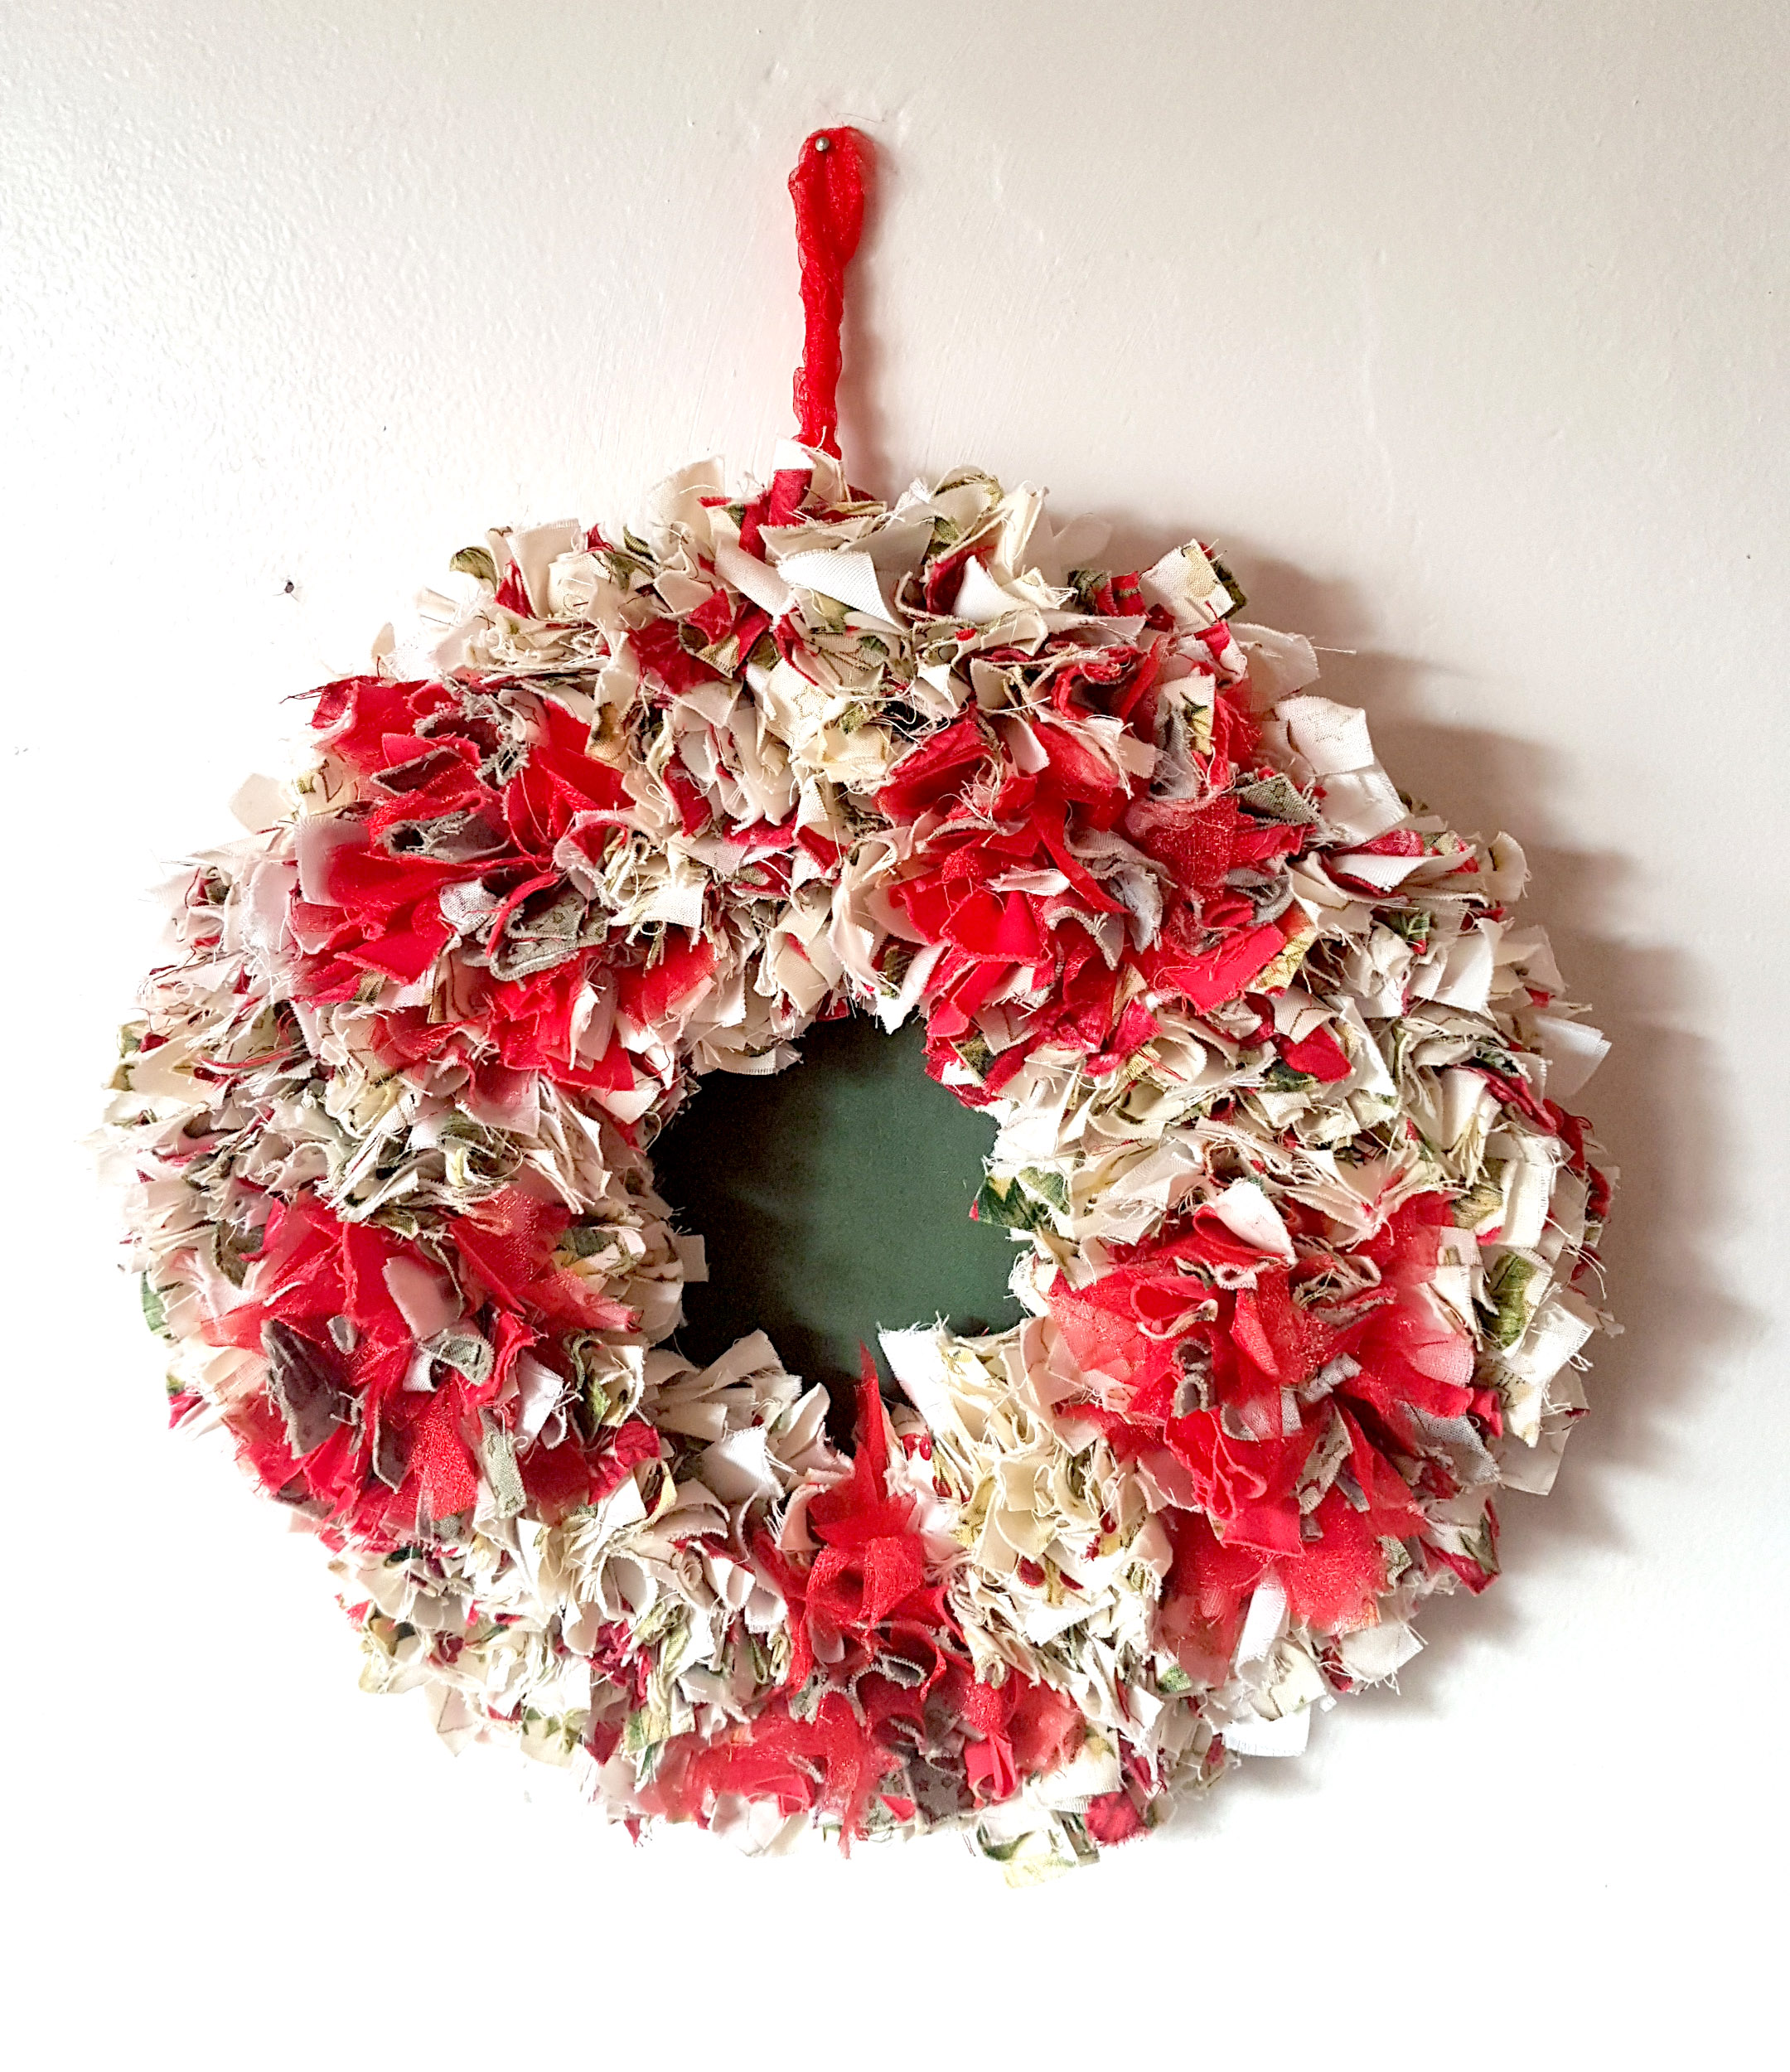 Red and gold rag rug christmas wreath made on a Ragged Life workshop